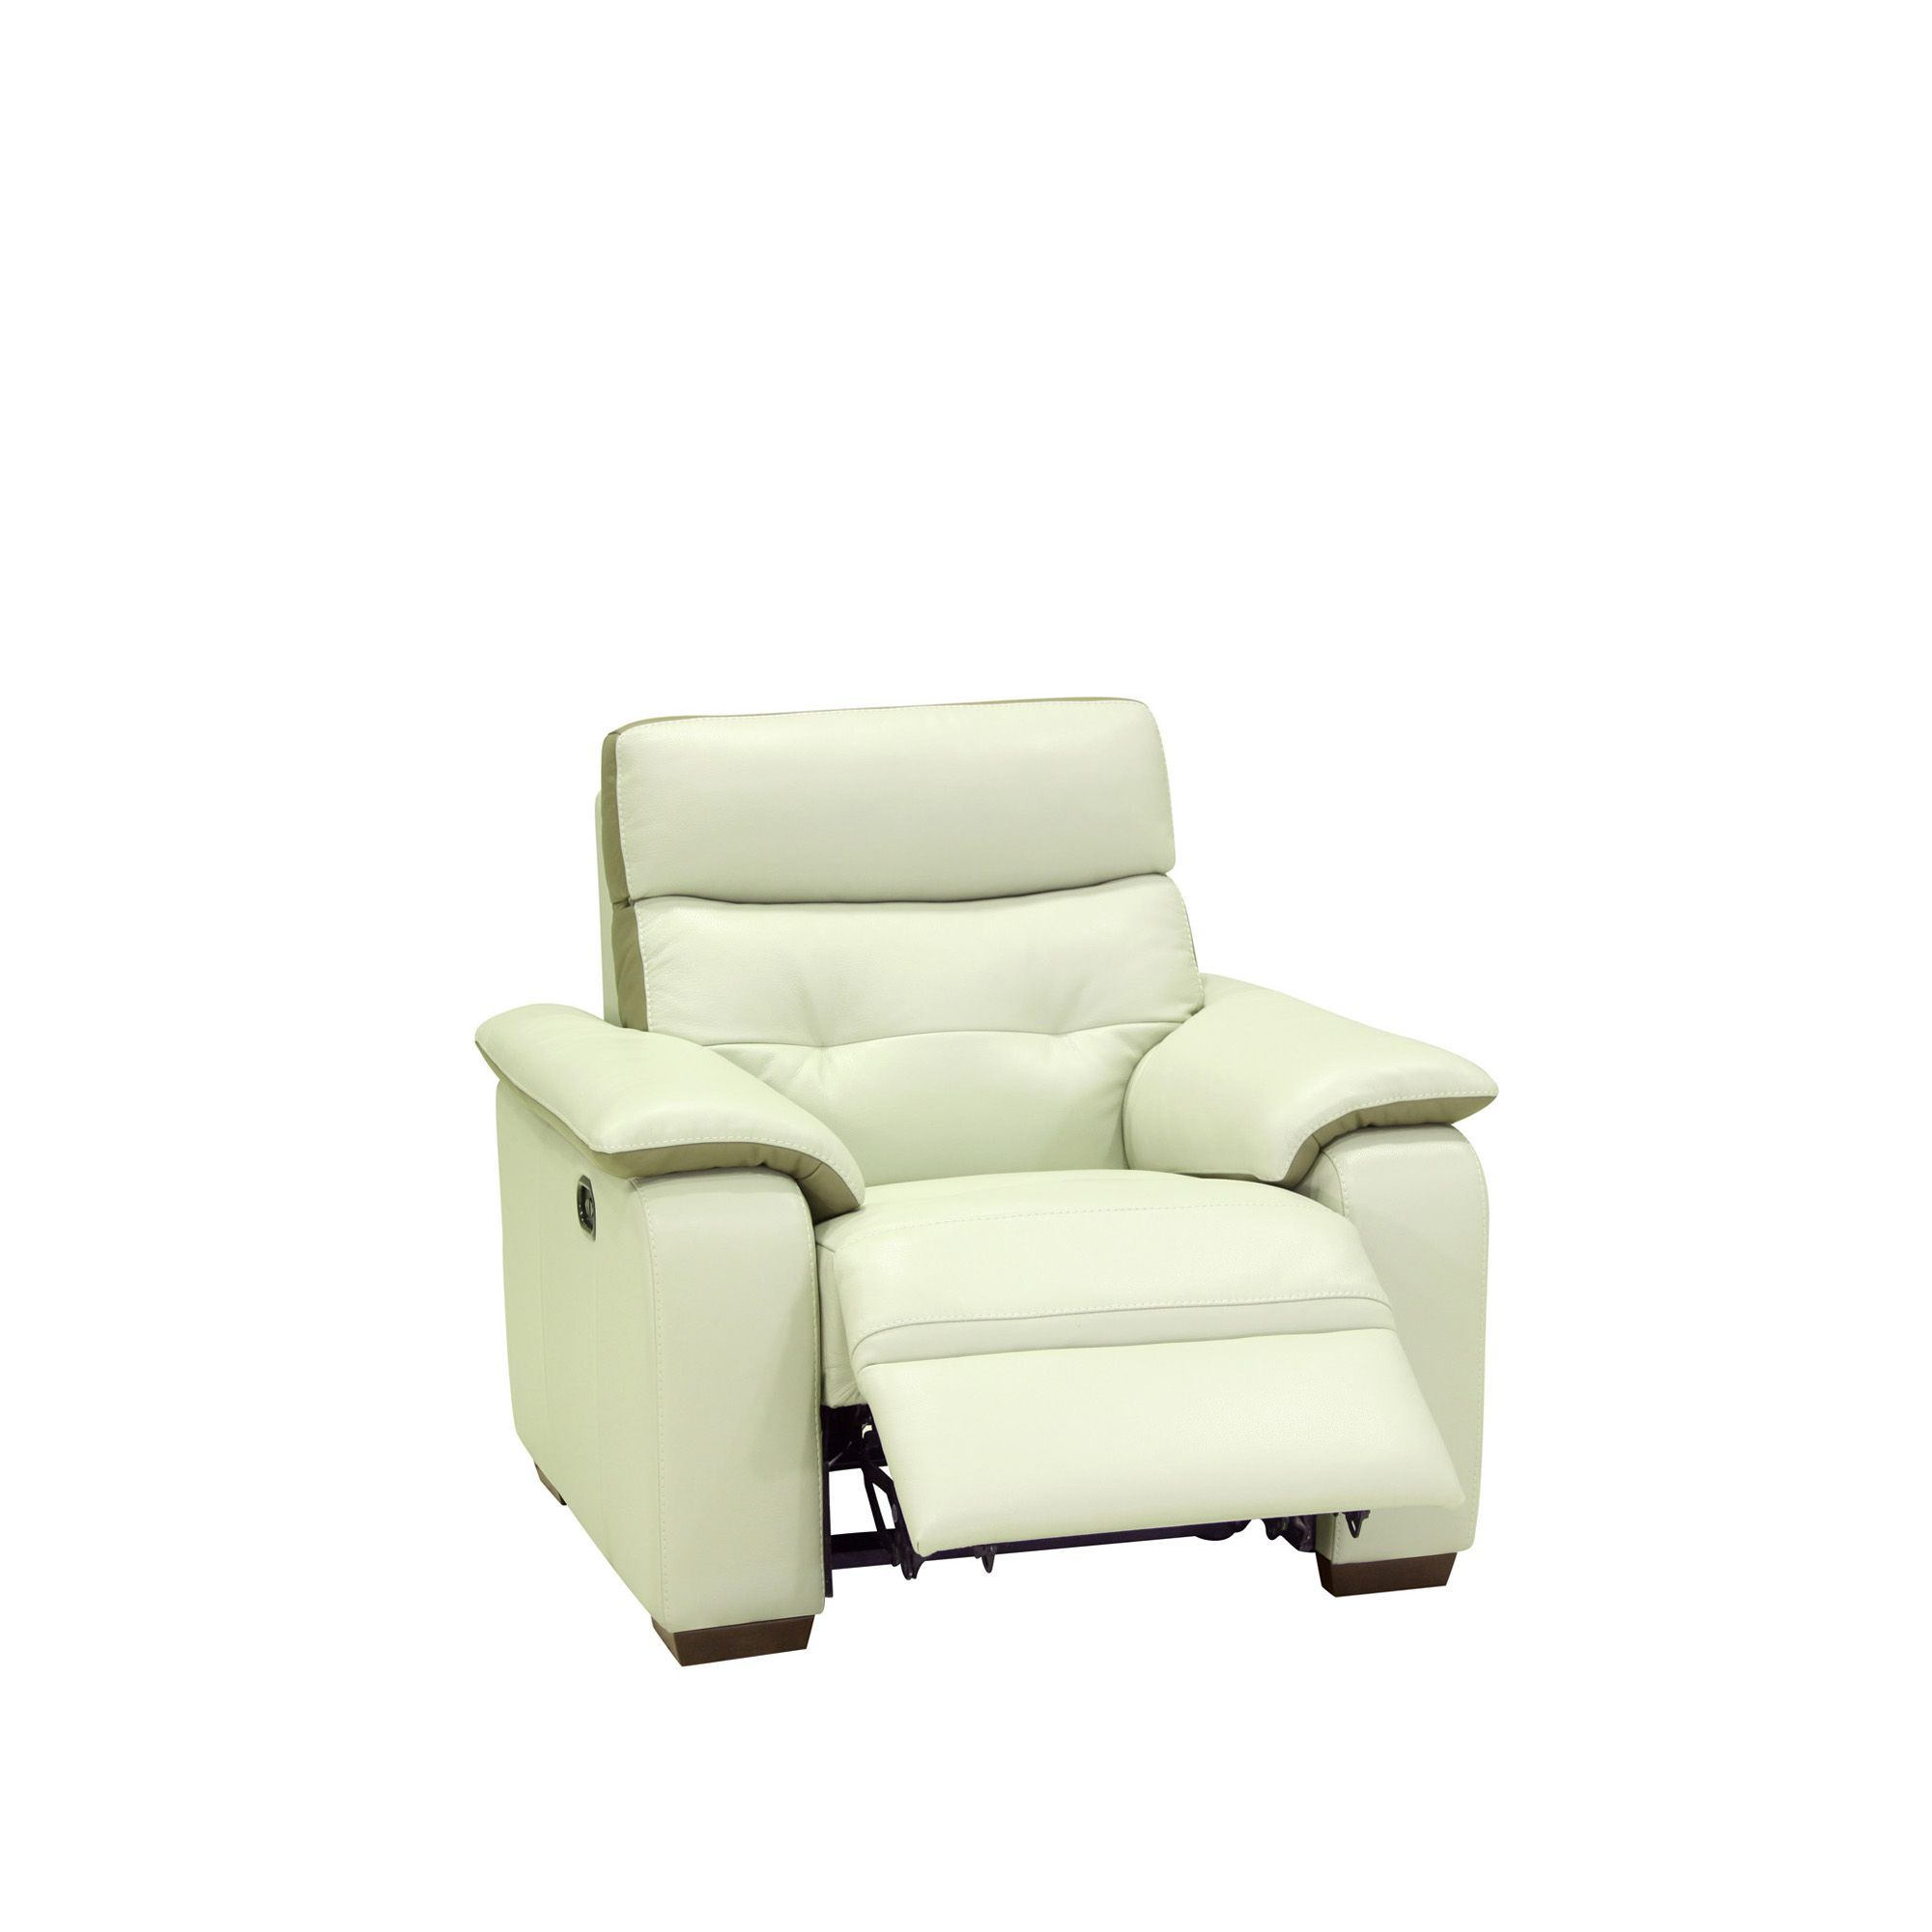 Cookes Collection Hobart Electric Recliner Armchair ...